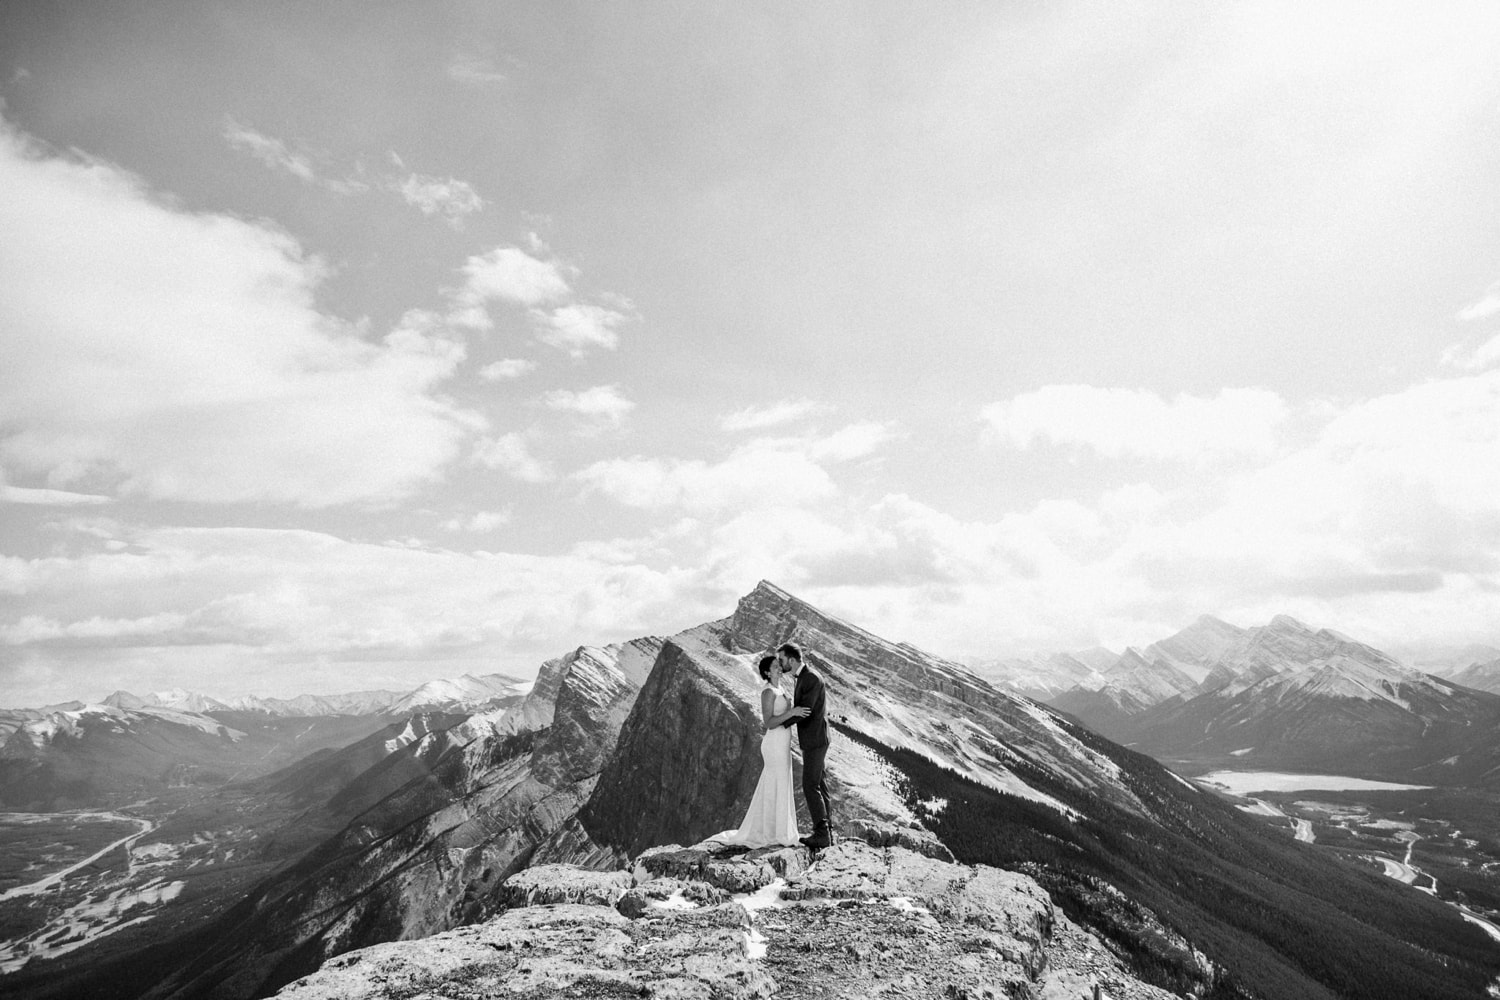 Black and white photo of a couple standing on a mountain with mountains framing behind them